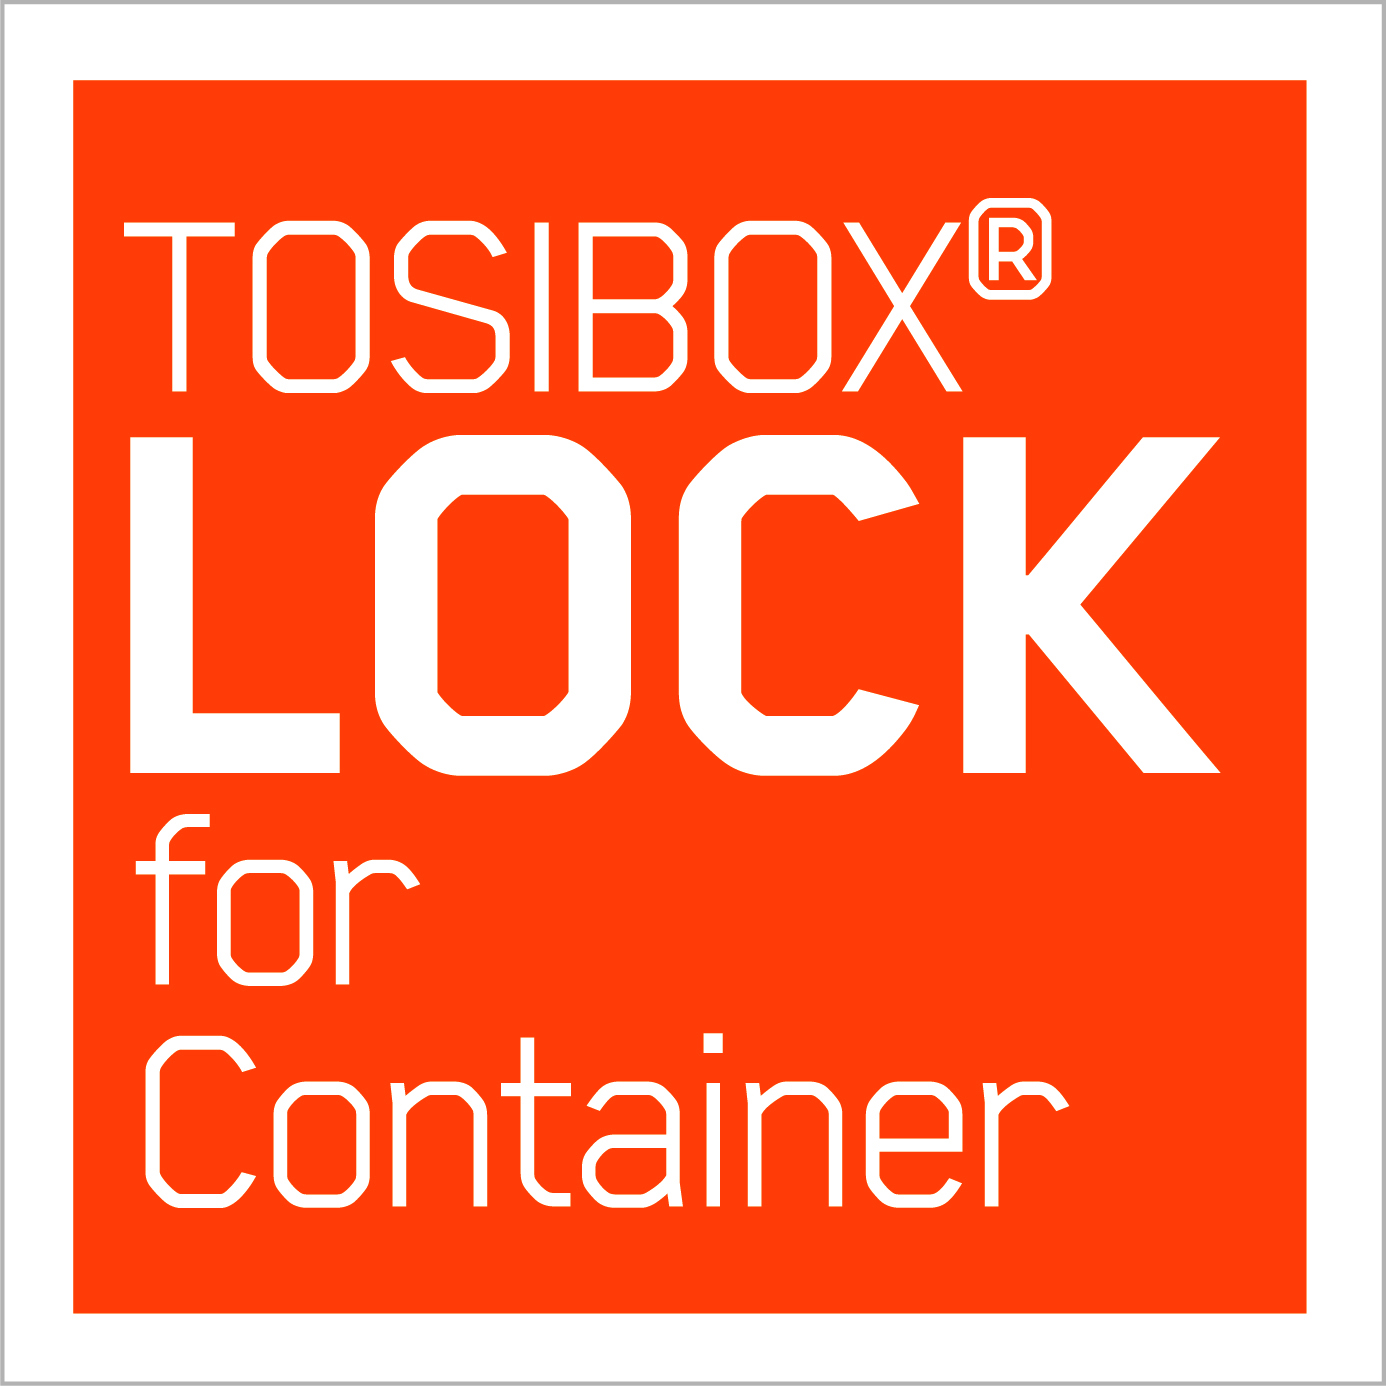 Tosibox Oy announces TOSIBOX Lock for Container developed on WAGO platform